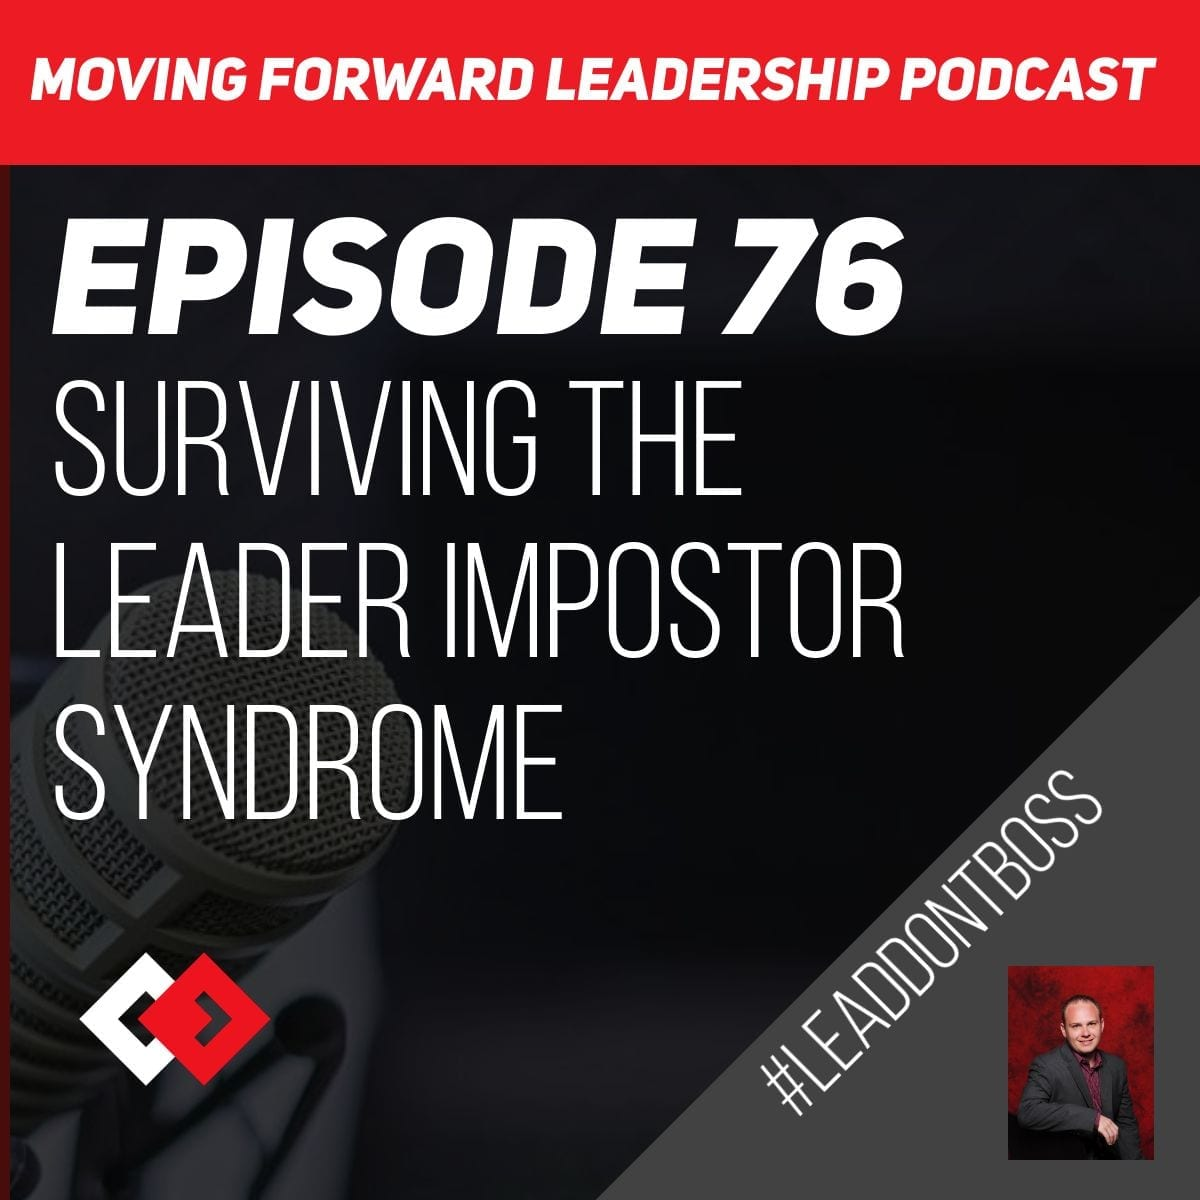 Surviving the Leader Impostor Syndrome | Episode 76